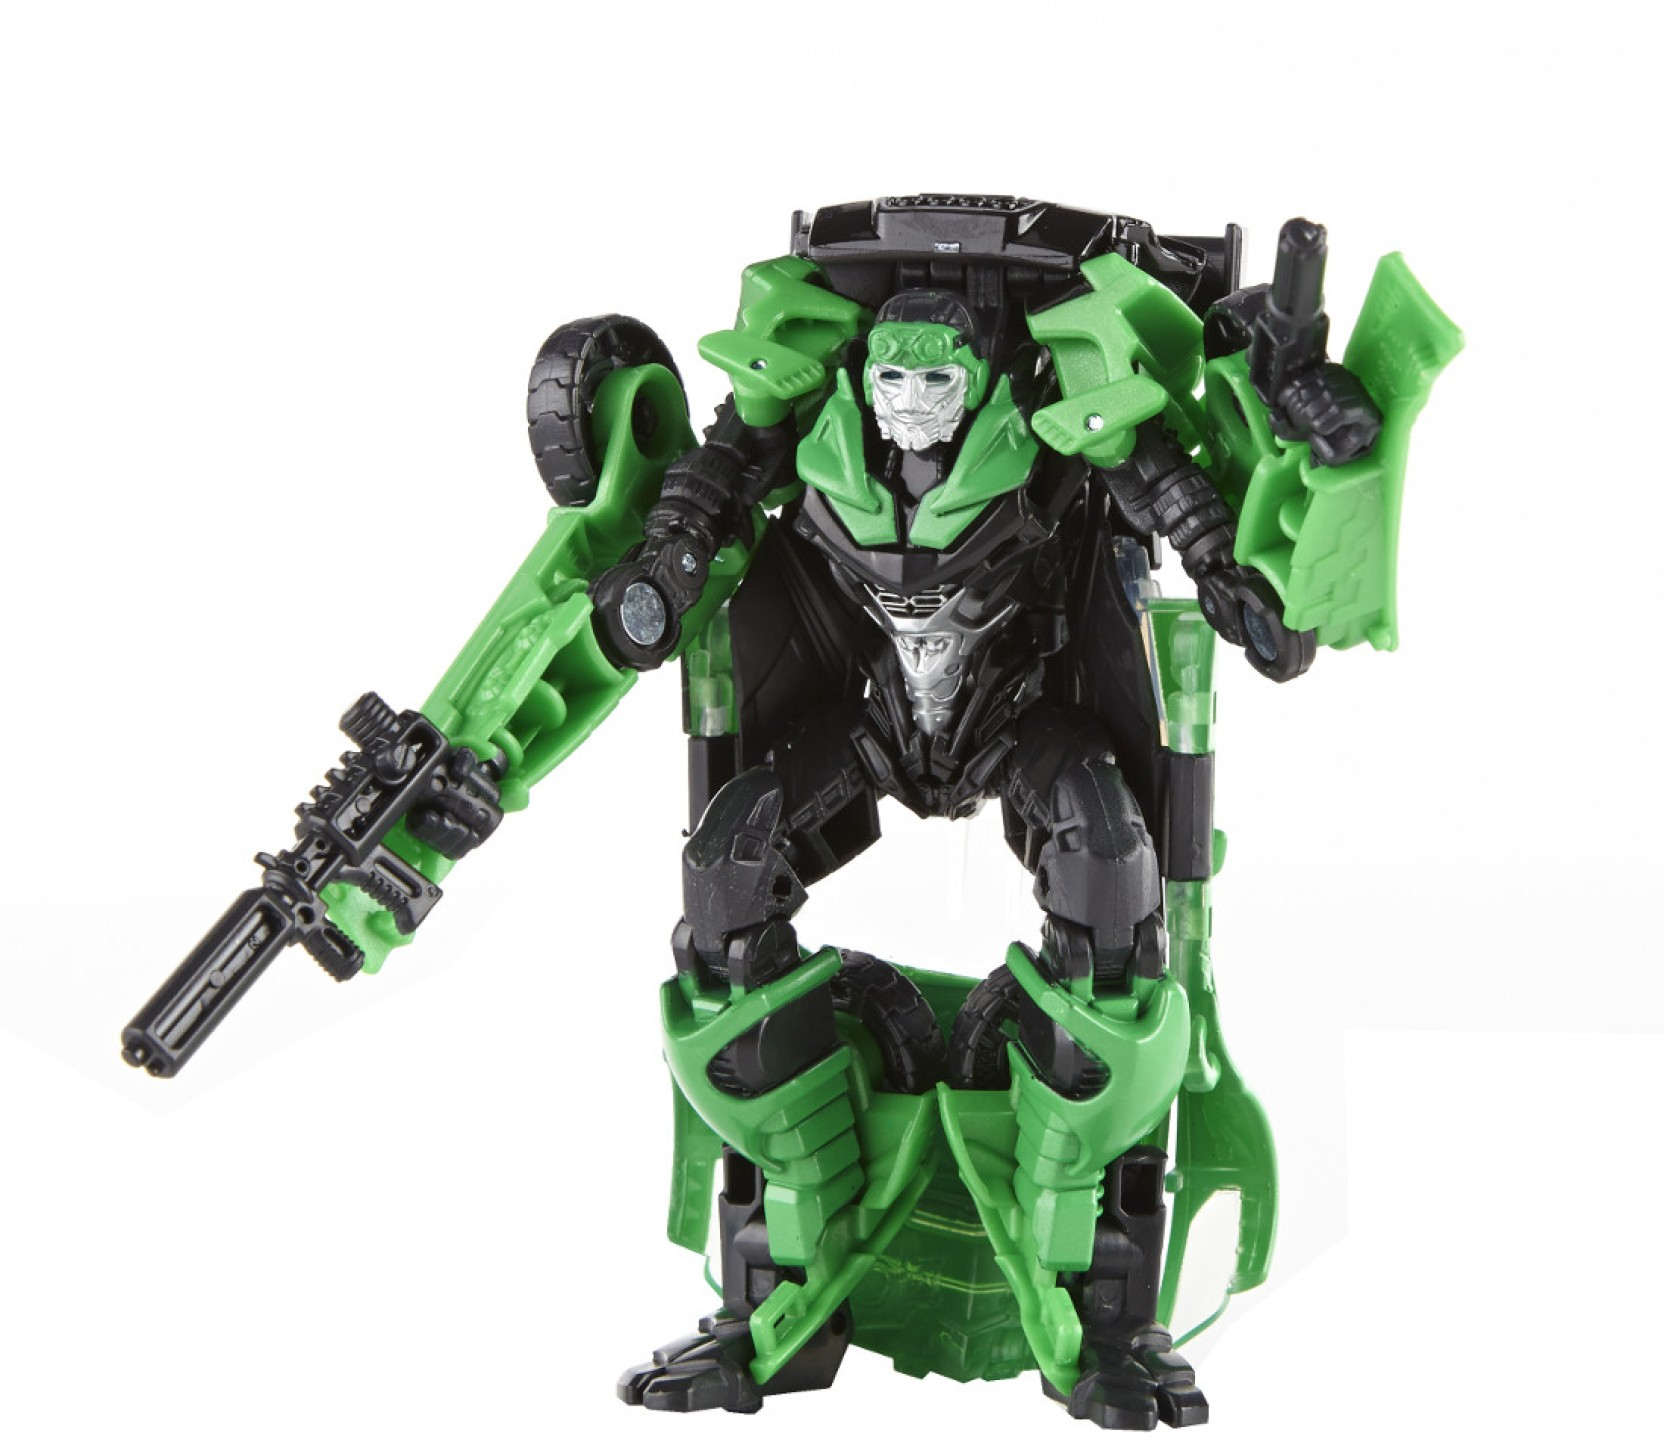 transformers mv4 generations deluxe crosshairs mv4 generations deluxe crosshairs buy. Black Bedroom Furniture Sets. Home Design Ideas